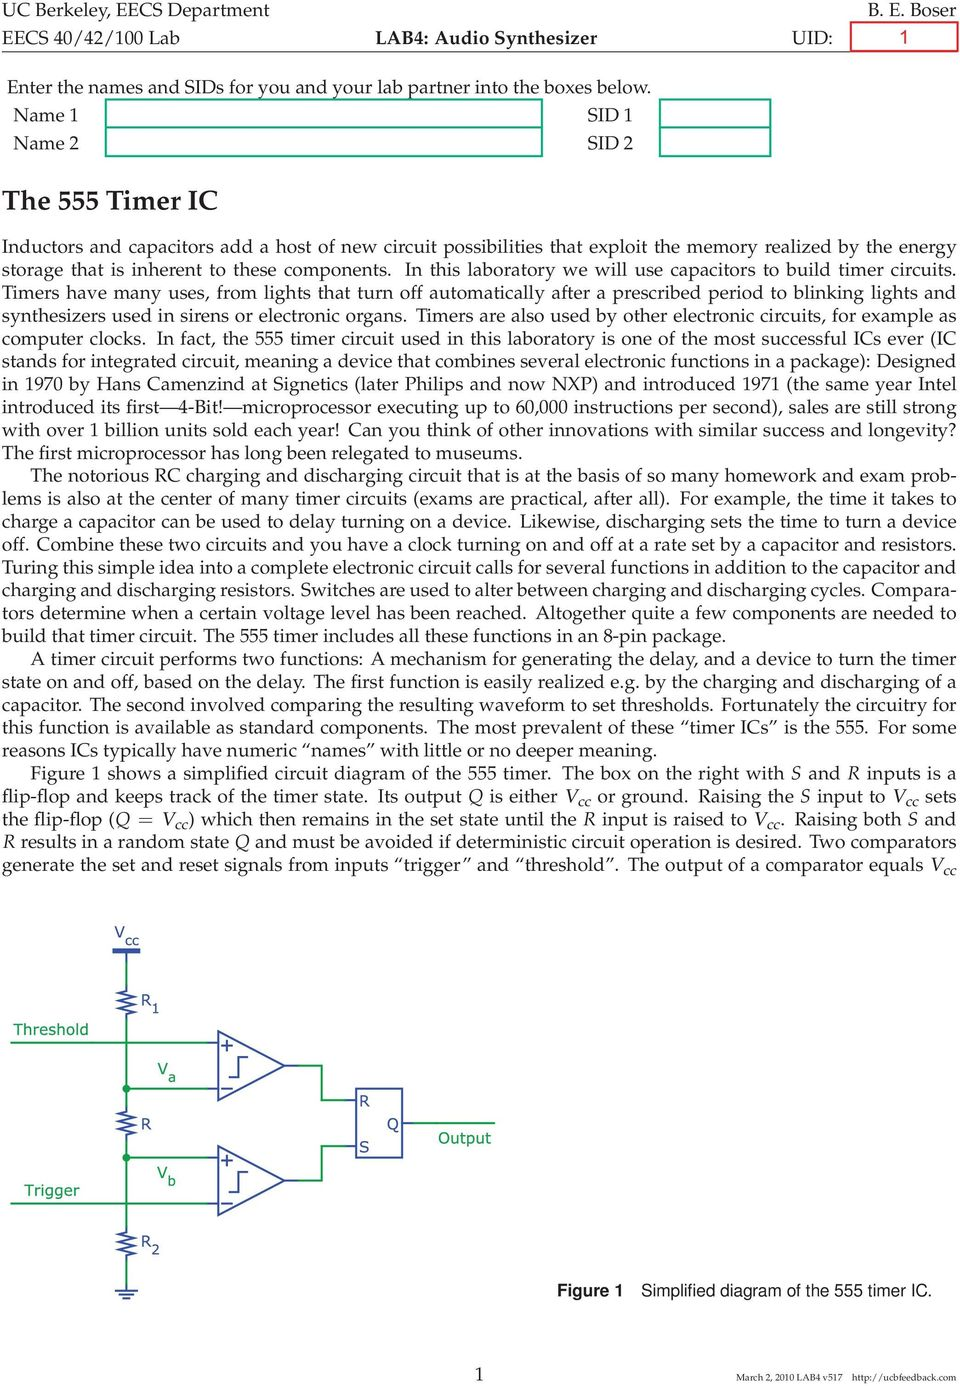 The 555 Timer Ic Uc Berkeley Eecs Department 40 42 100 Lab Simple Metal Detector Circuit Diagram Using In This Laboratory We Will Use Capacitors To Build Circuits